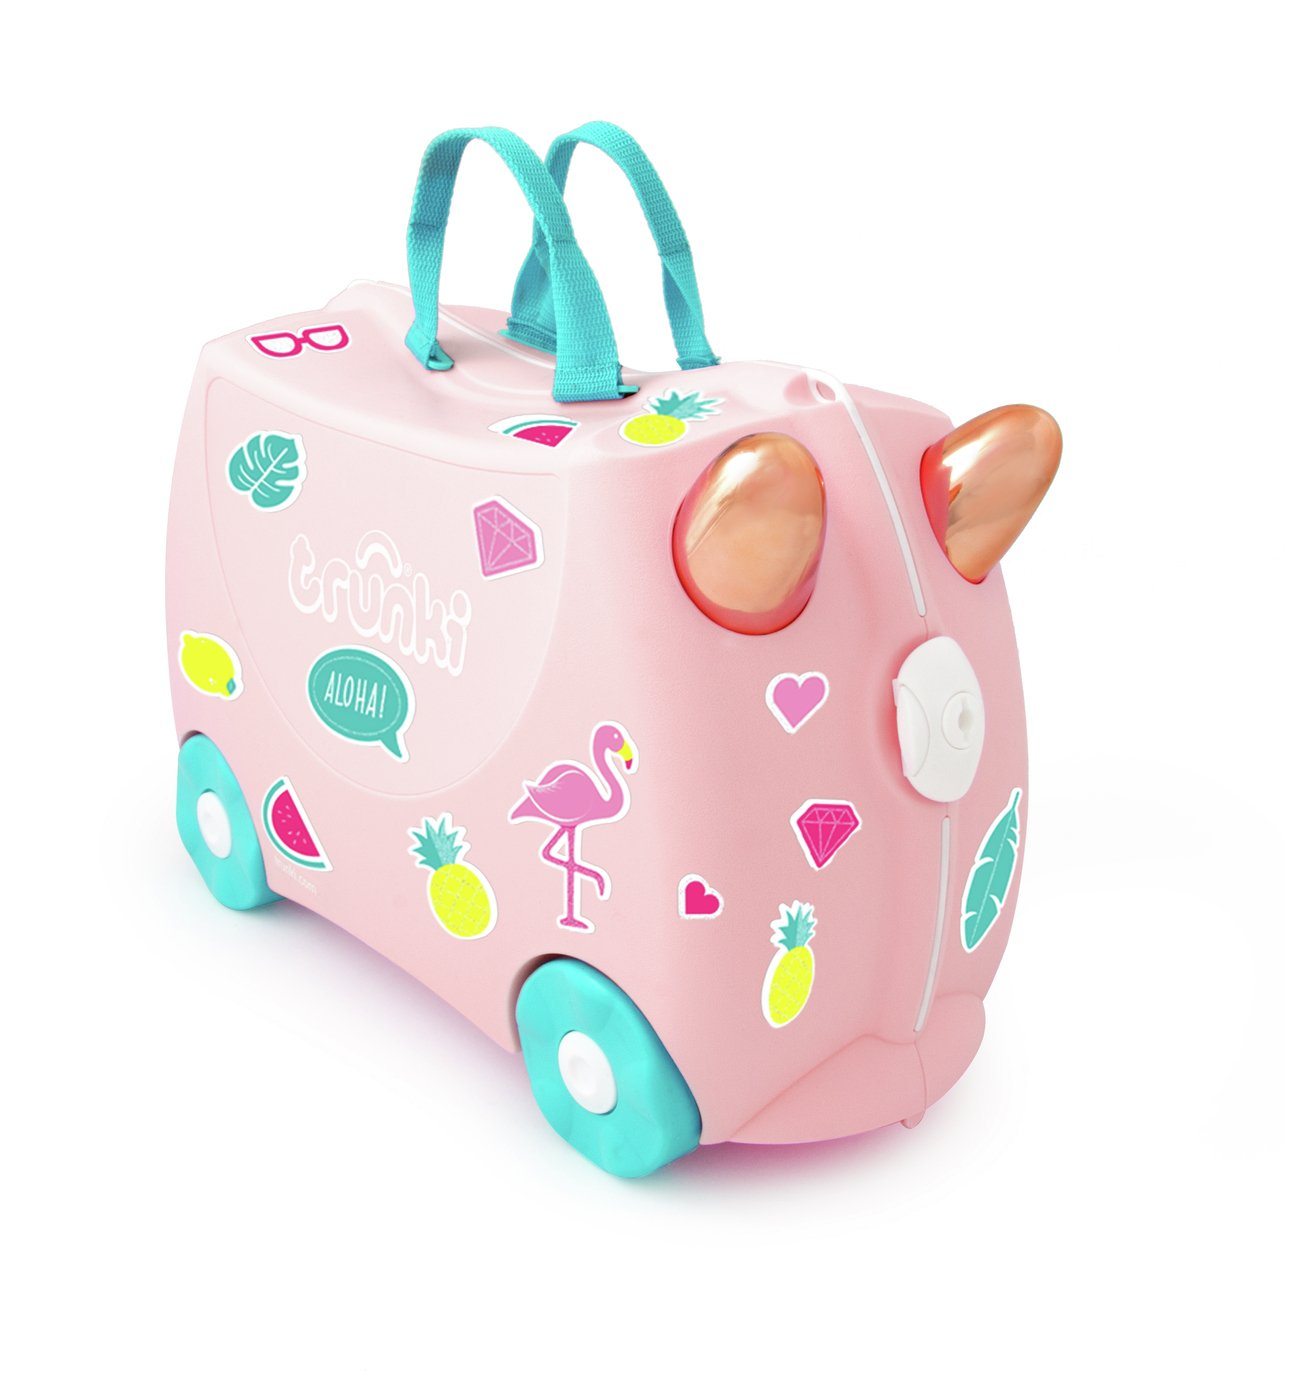 Trunki Flossi Flamingo 4 Wheel Hard Ride On Suitcase - Pink